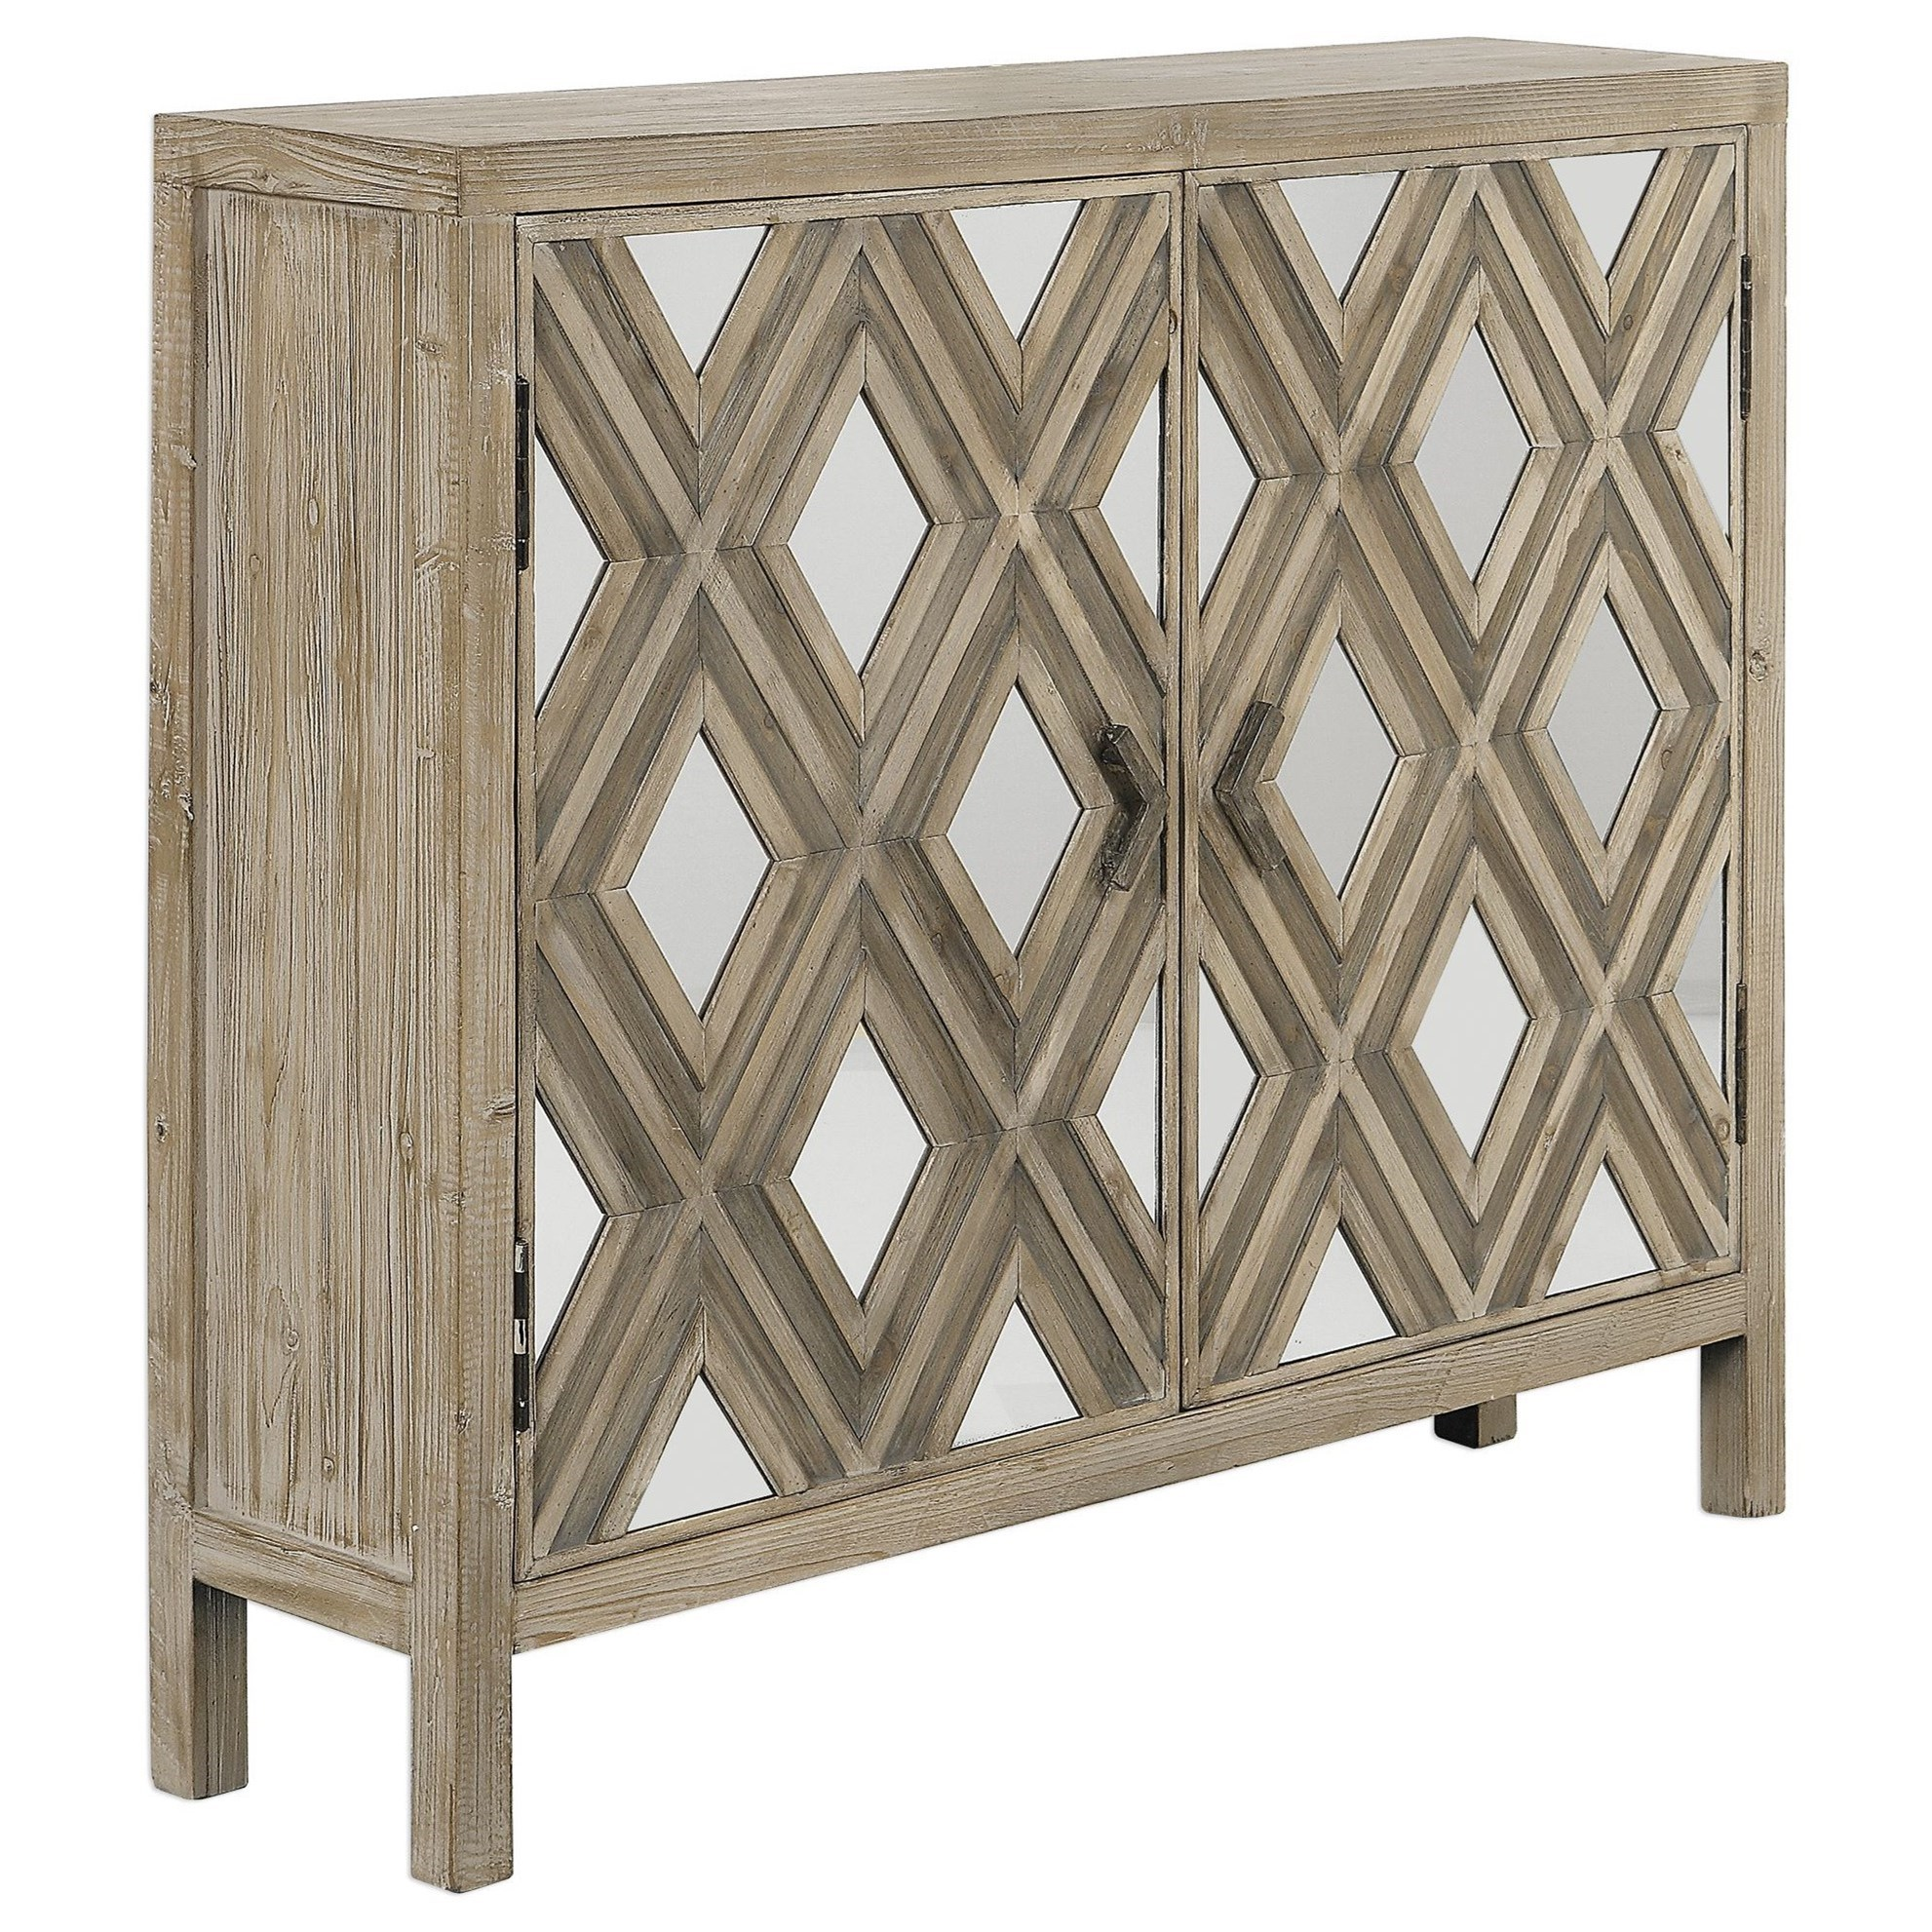 Accent Furniture - Chests Tahira Mirrored Accent Cabinet by Uttermost at Furniture and ApplianceMart